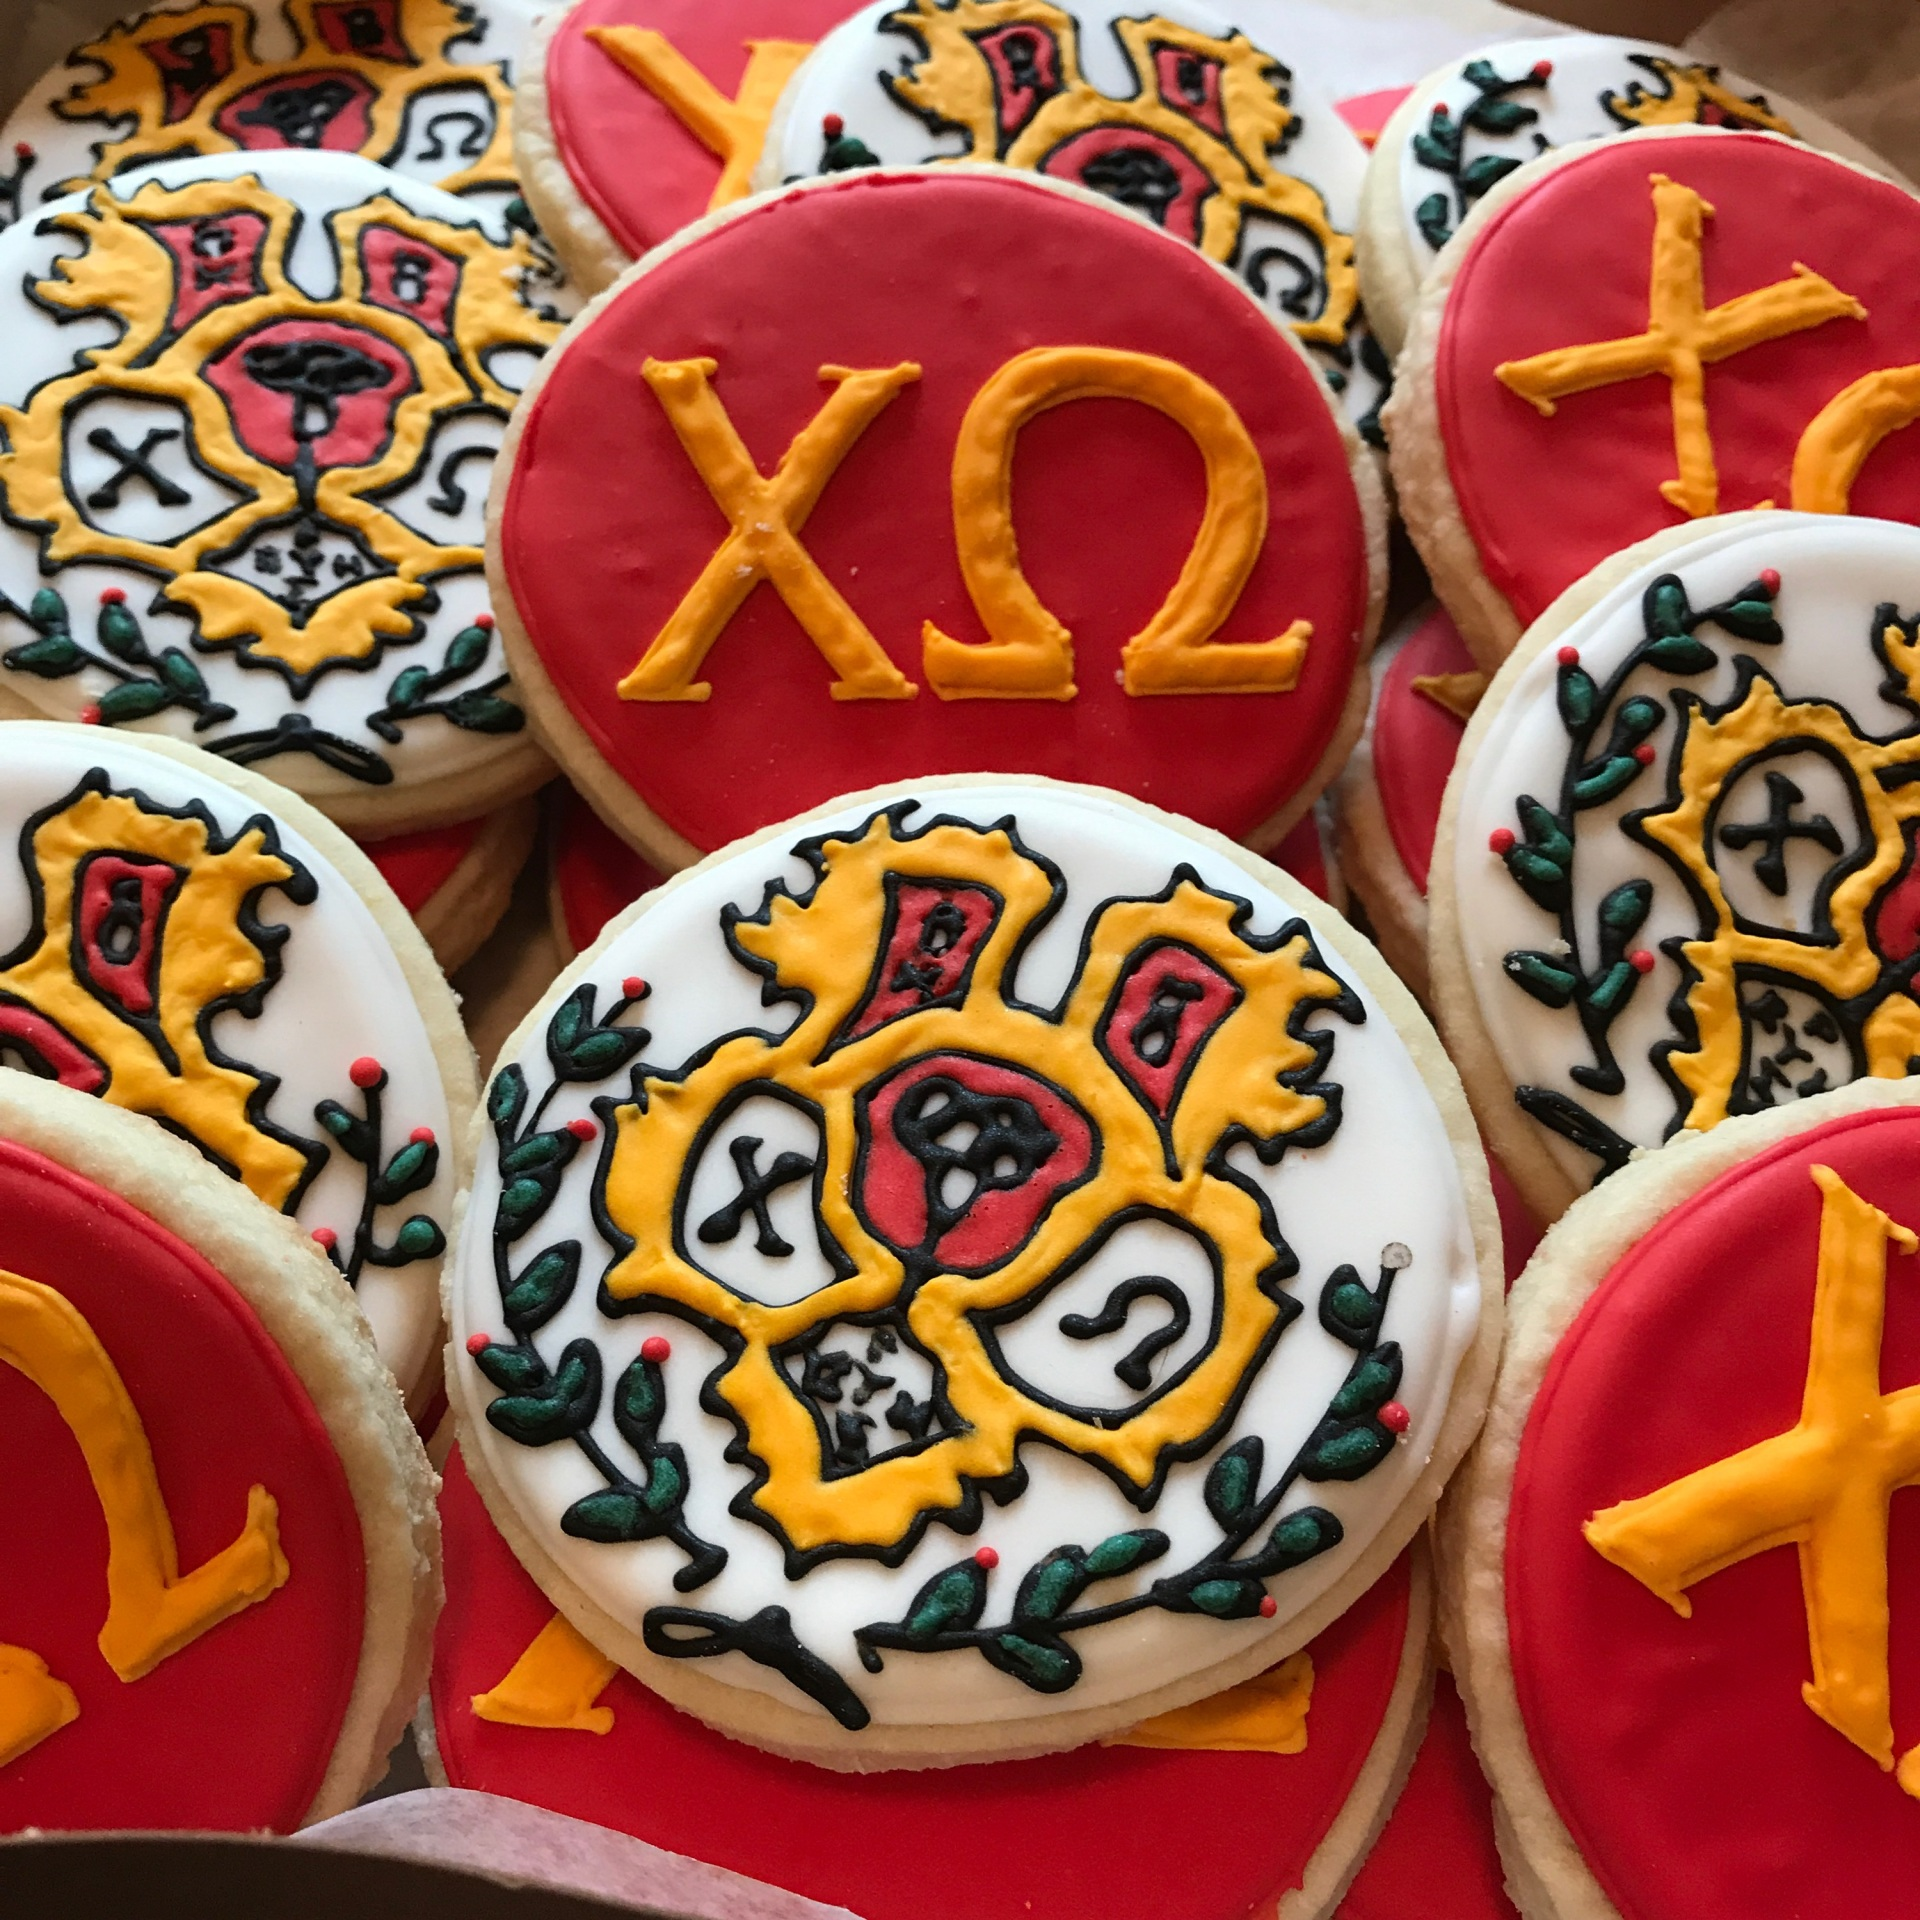 Sorority Crest and Letters